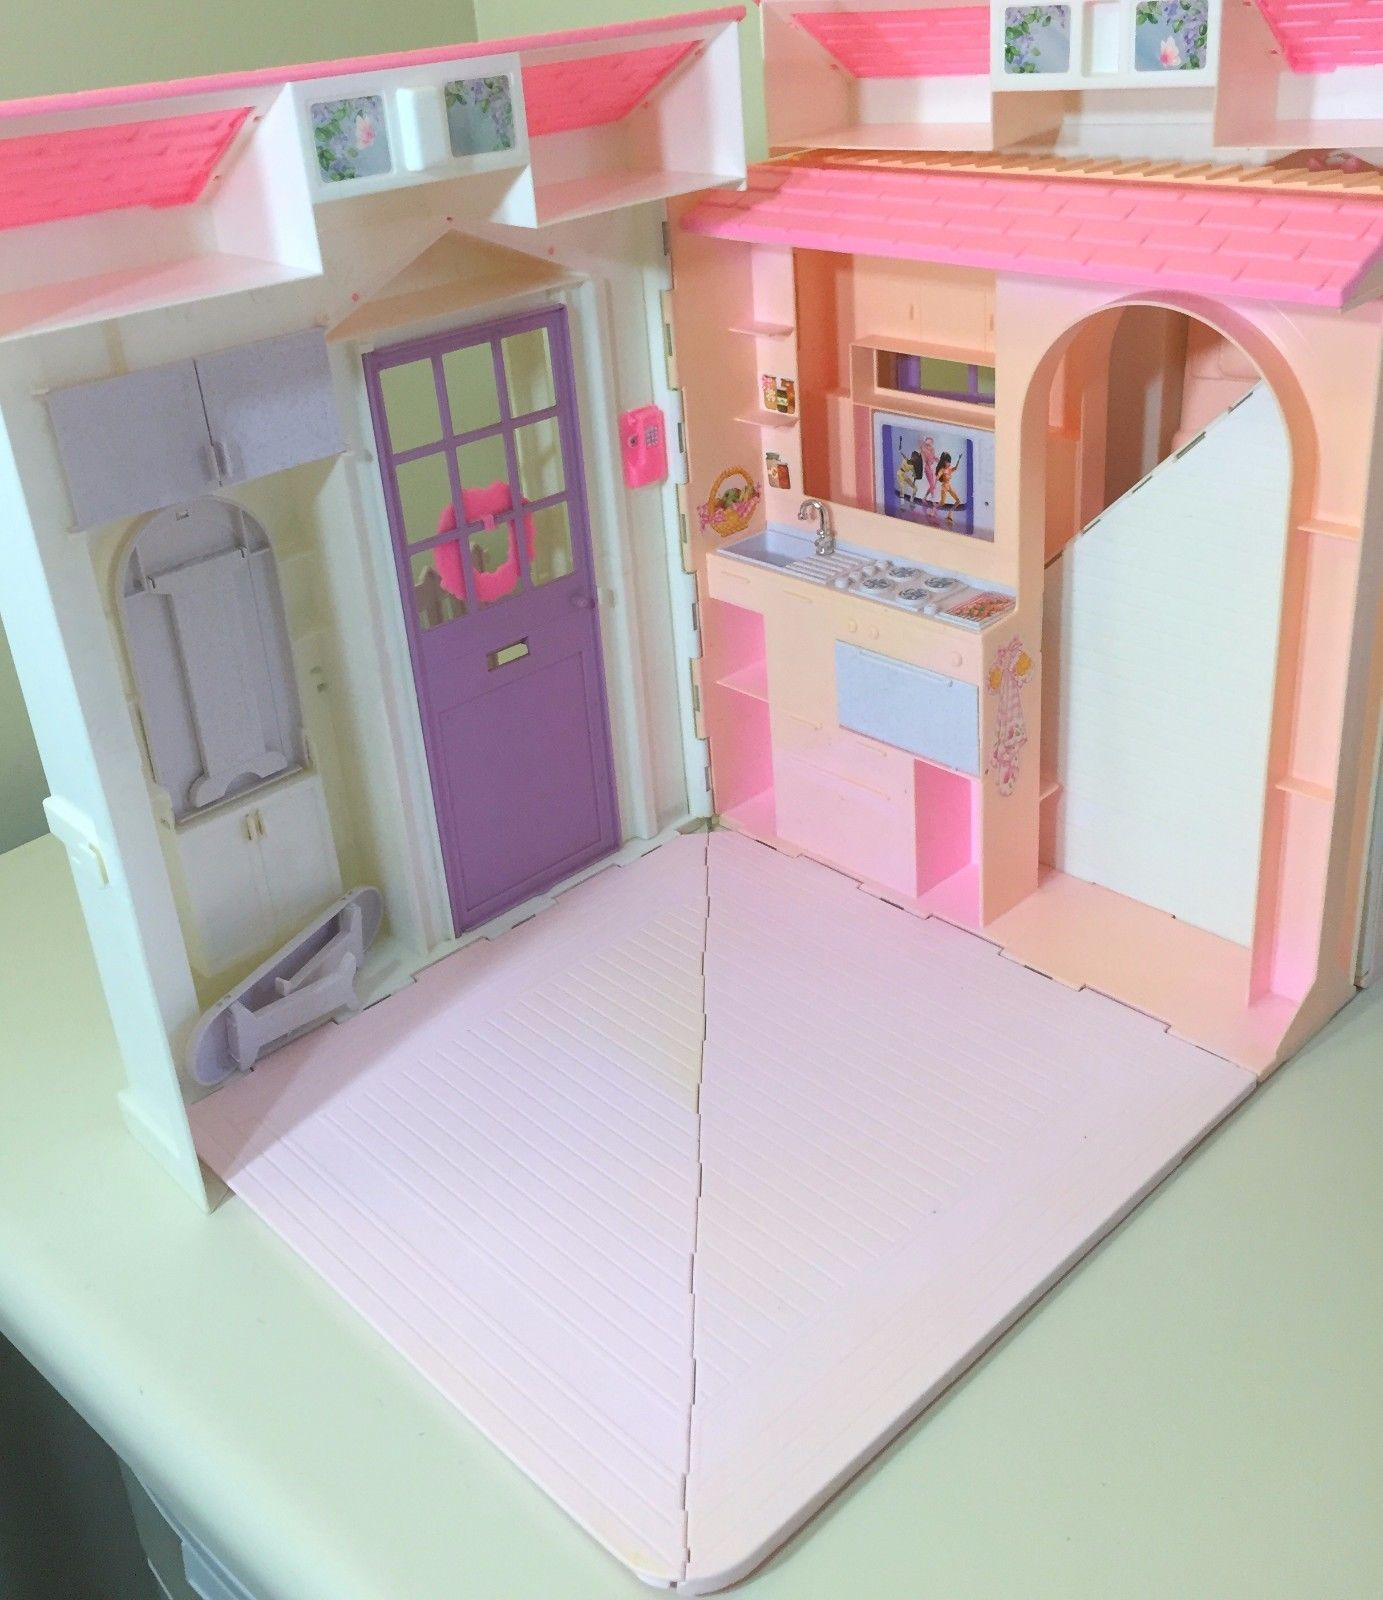 Dreams House Furniture: Mattel Barbie 2006 3 Story Dream House Playset J0505 VGUC